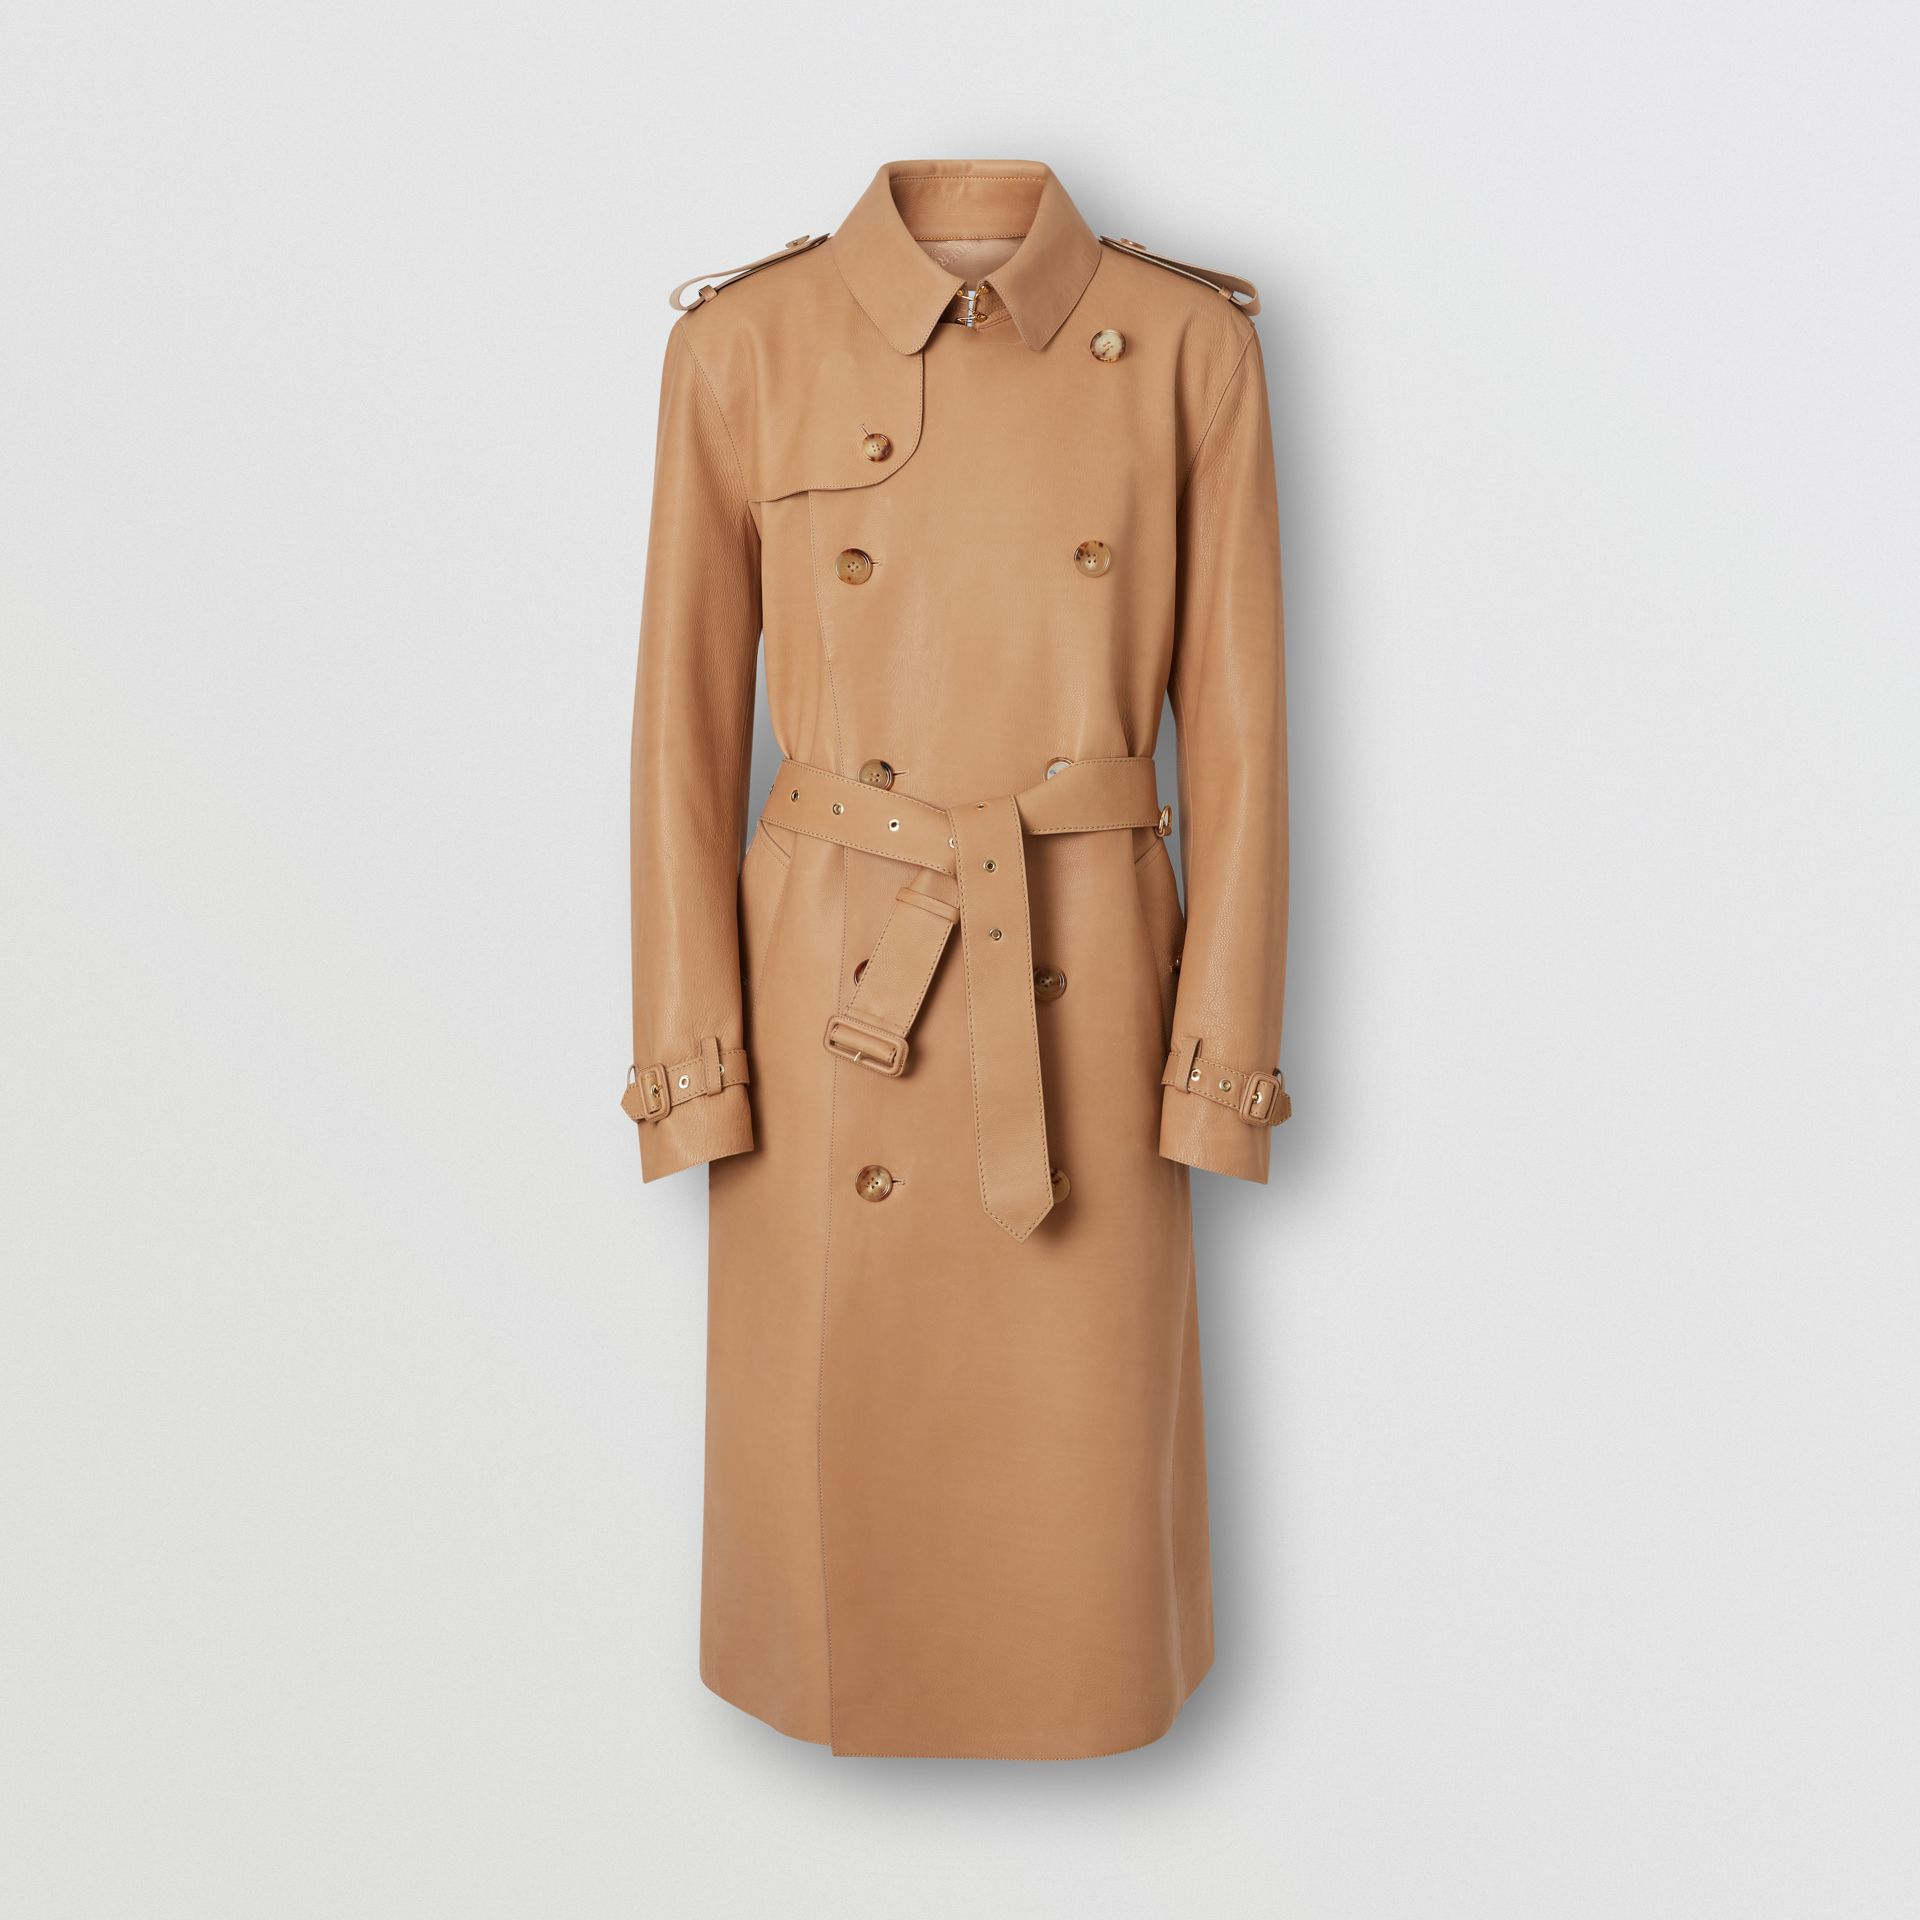 Plonge Leather Trench Coat in Camel - Men | Burberry - gallery image 3